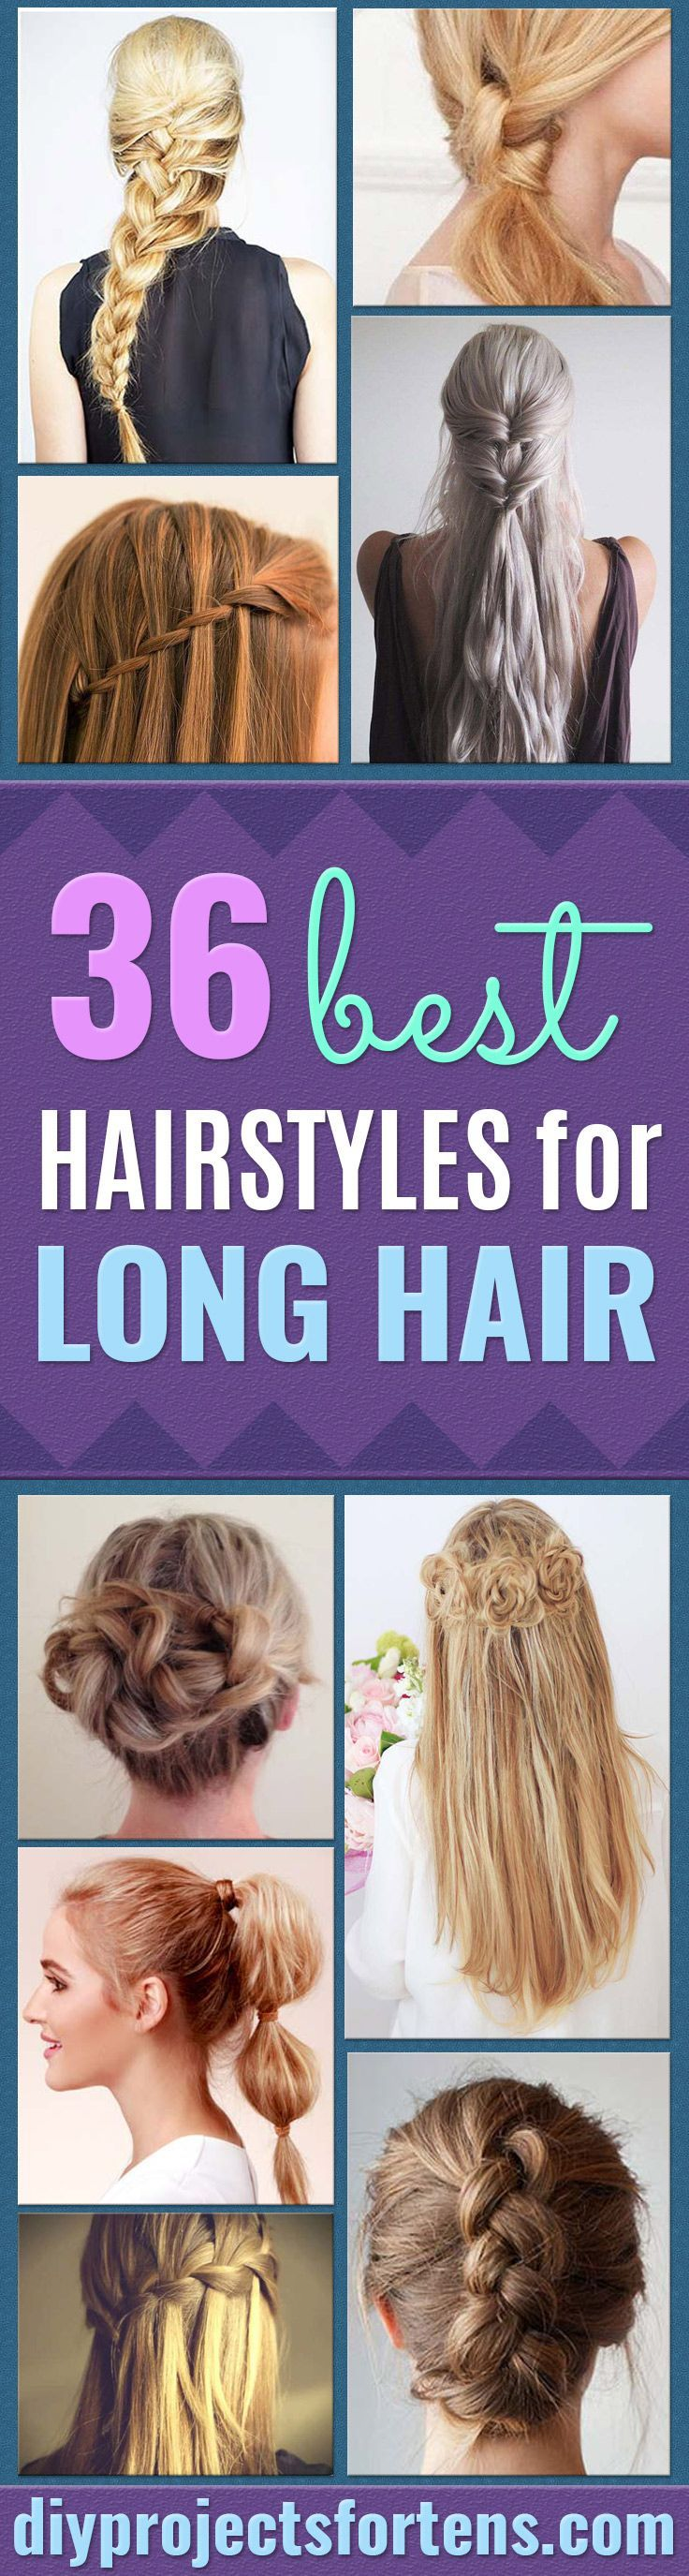 Best Hairstyles for Long Hair - Step by Step Tutorials for Easy Curls, Updo, Hal...